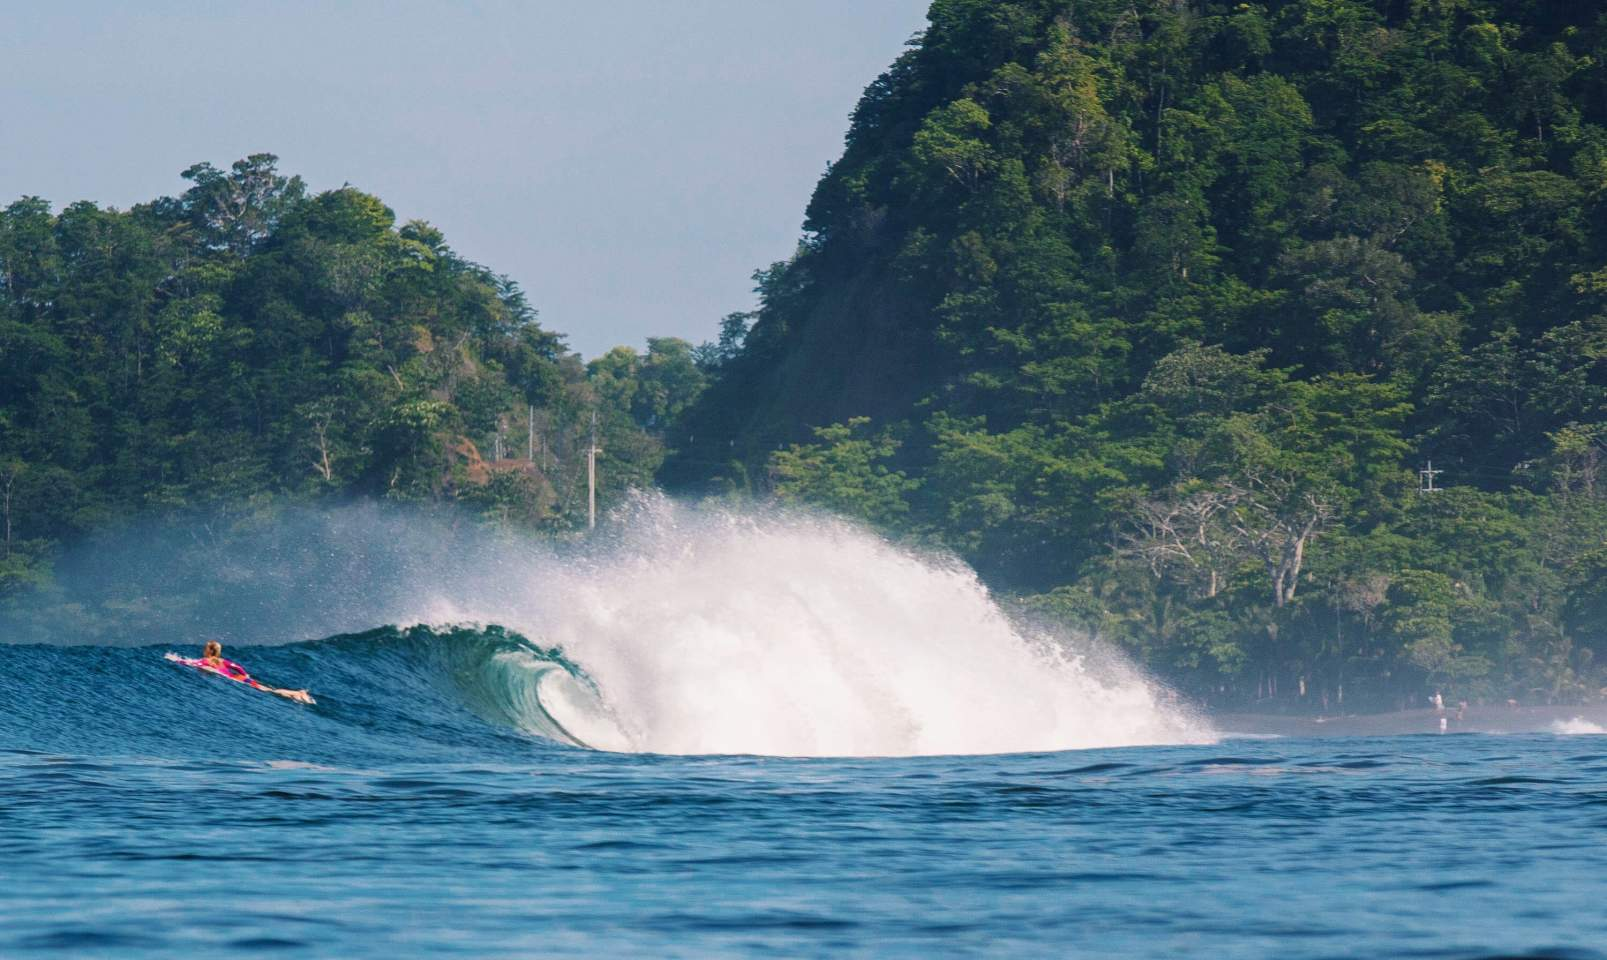 6 Best Intermediate Surfing Beaches in Costa Rica